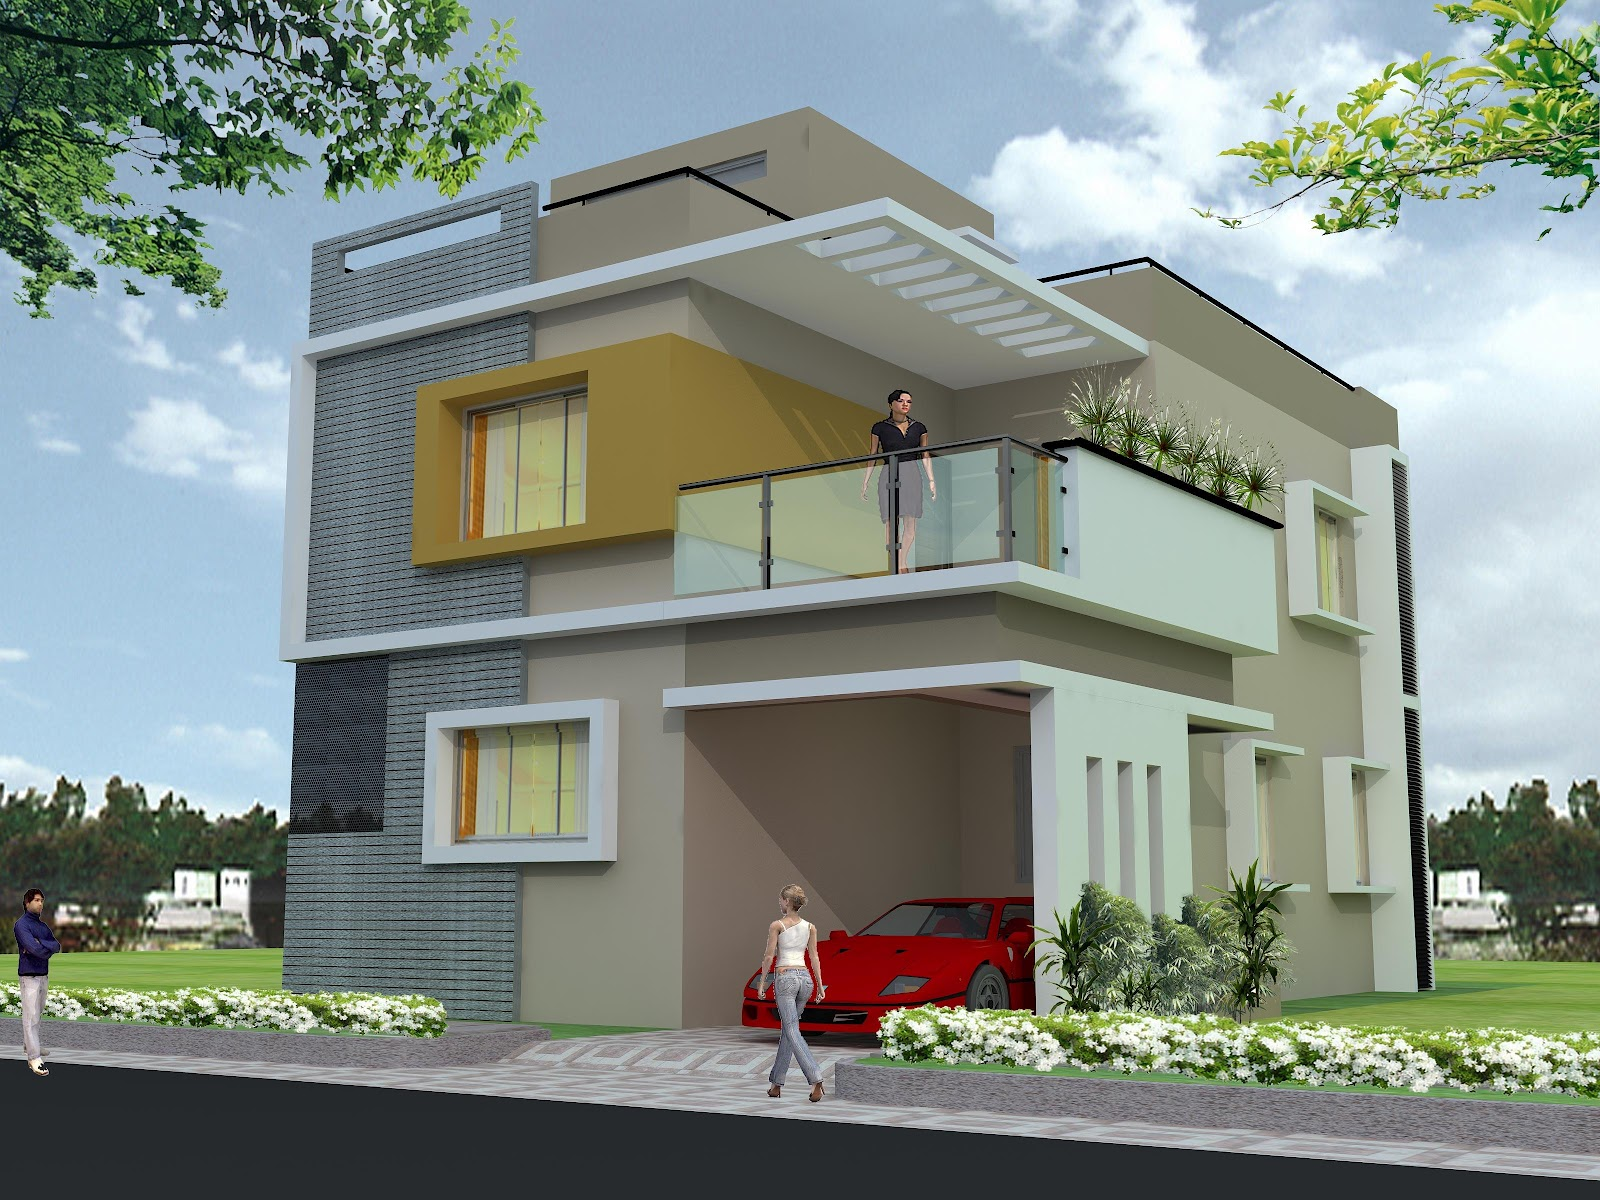 Lake shore villas designer duplex villas for sale in for Housse 30x50